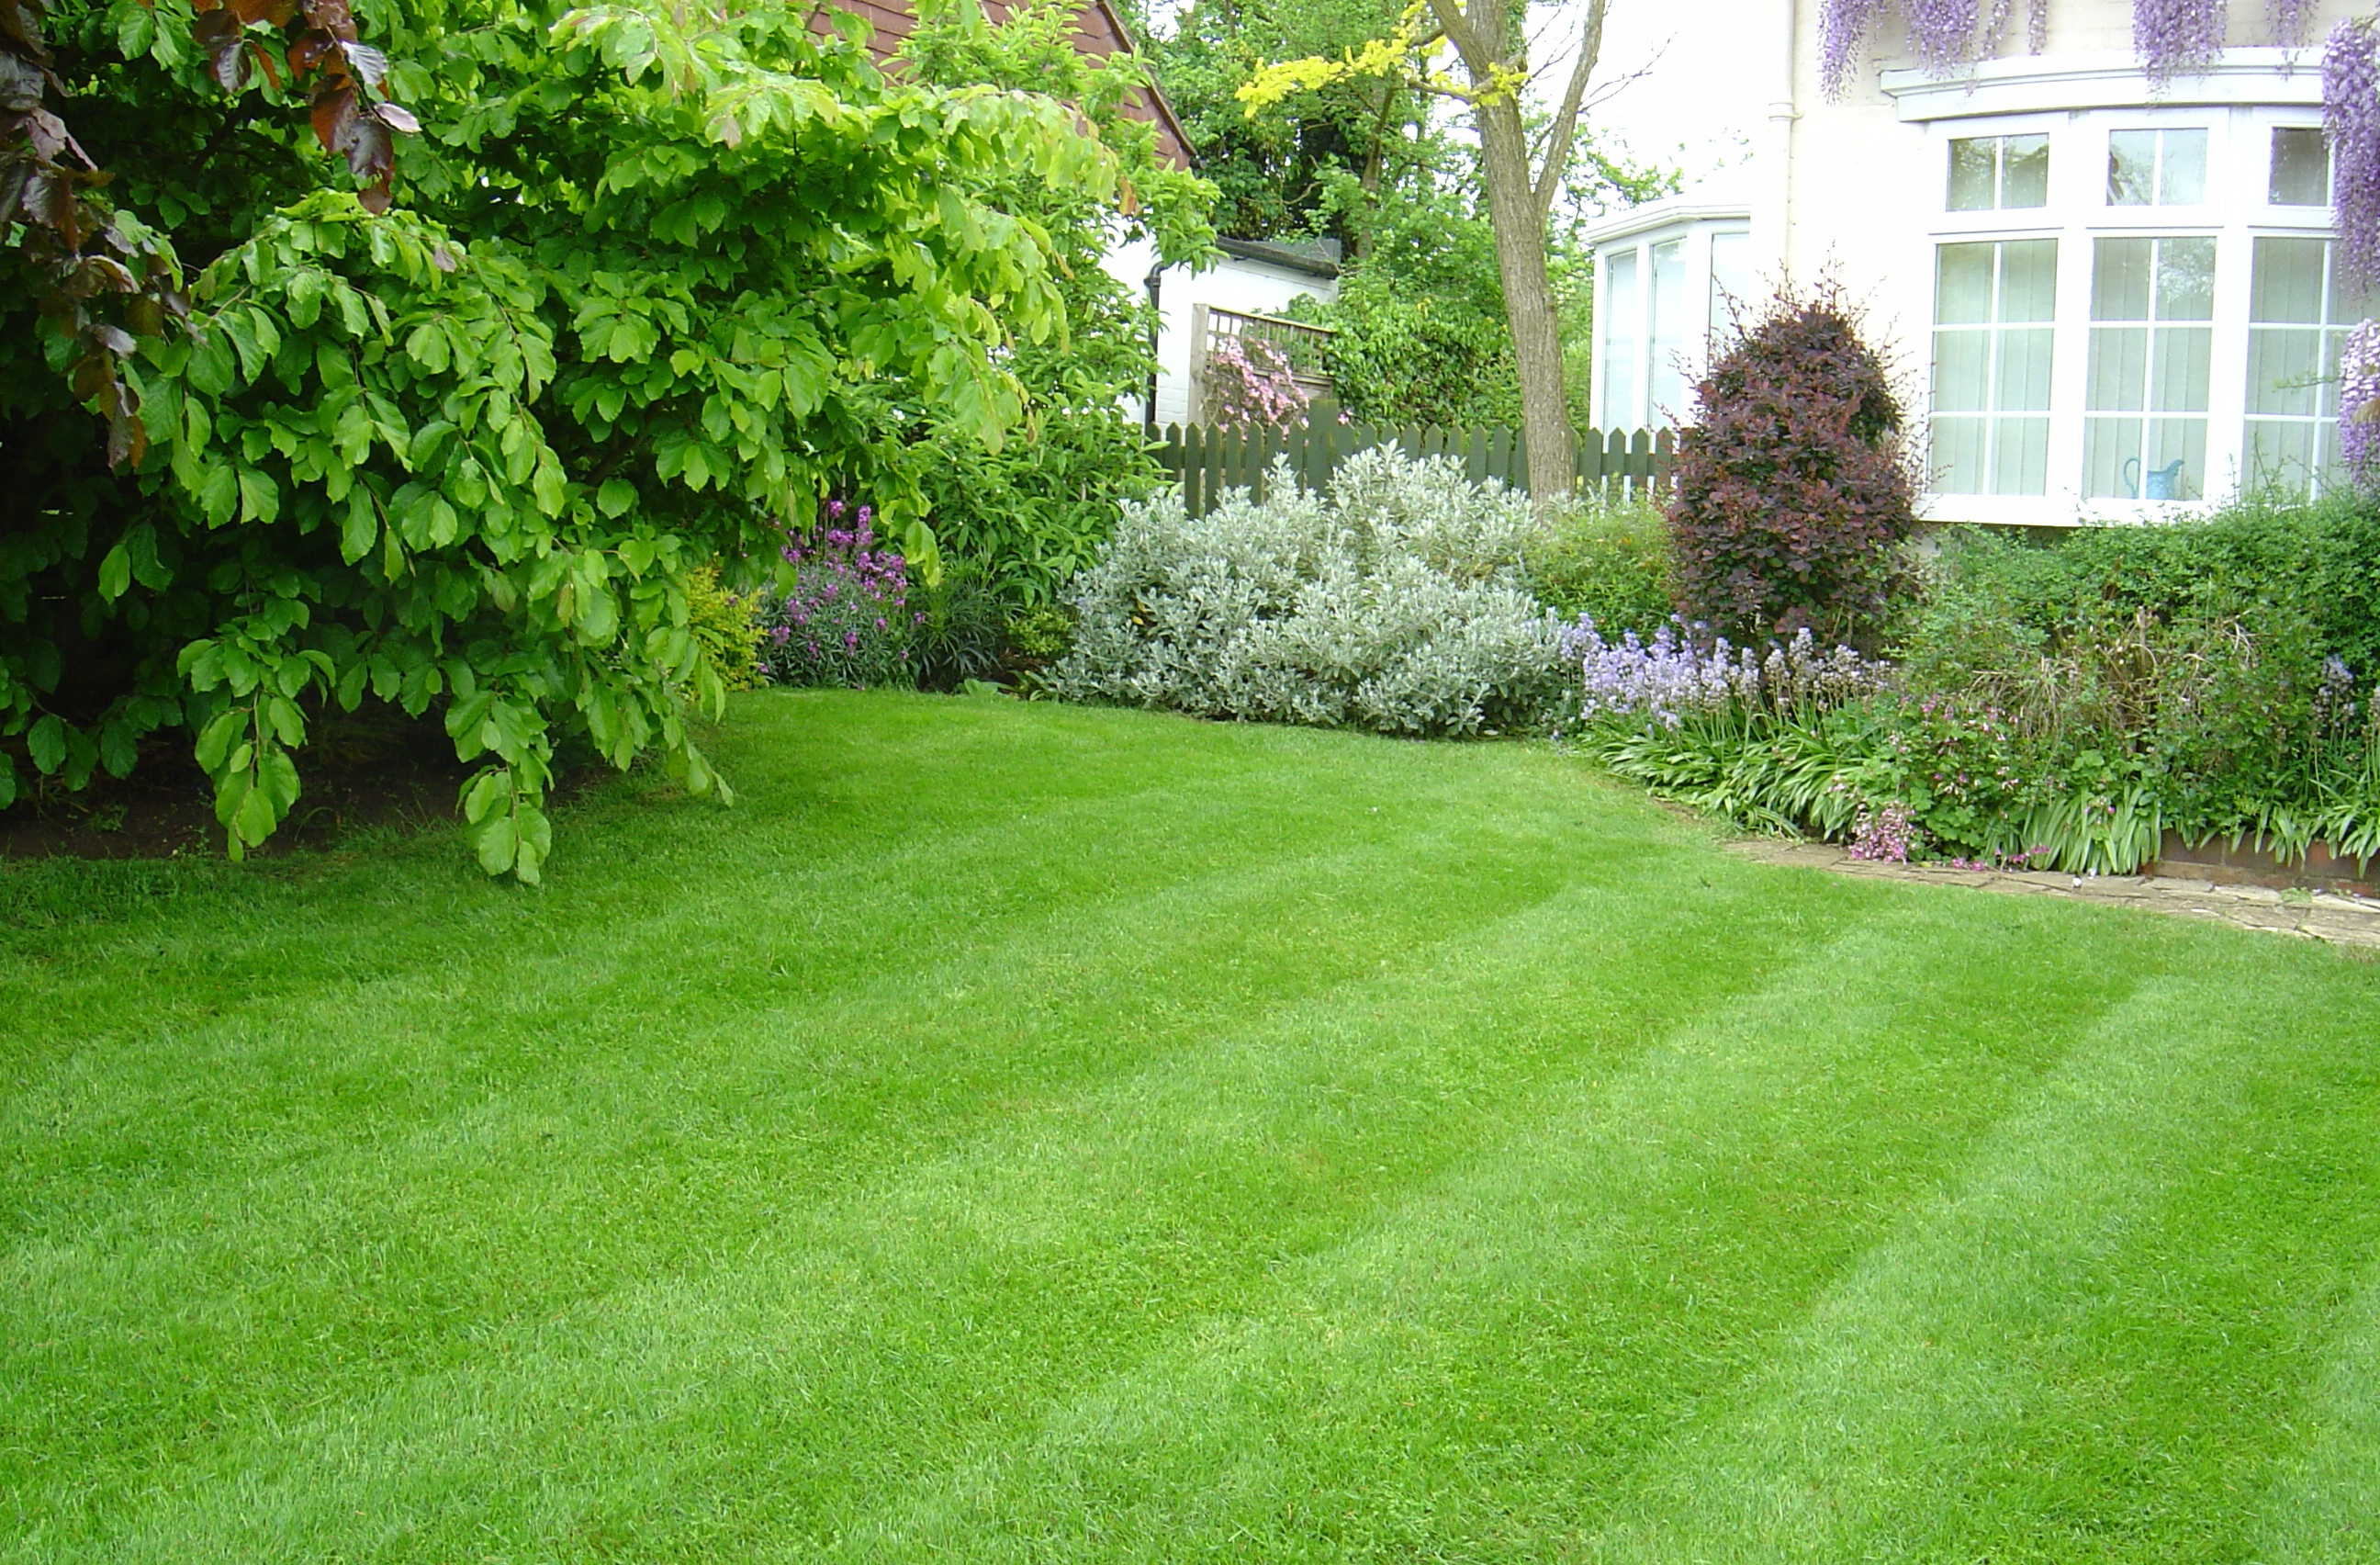 Lawn care vertopia gardens for Weeds garden maintenance